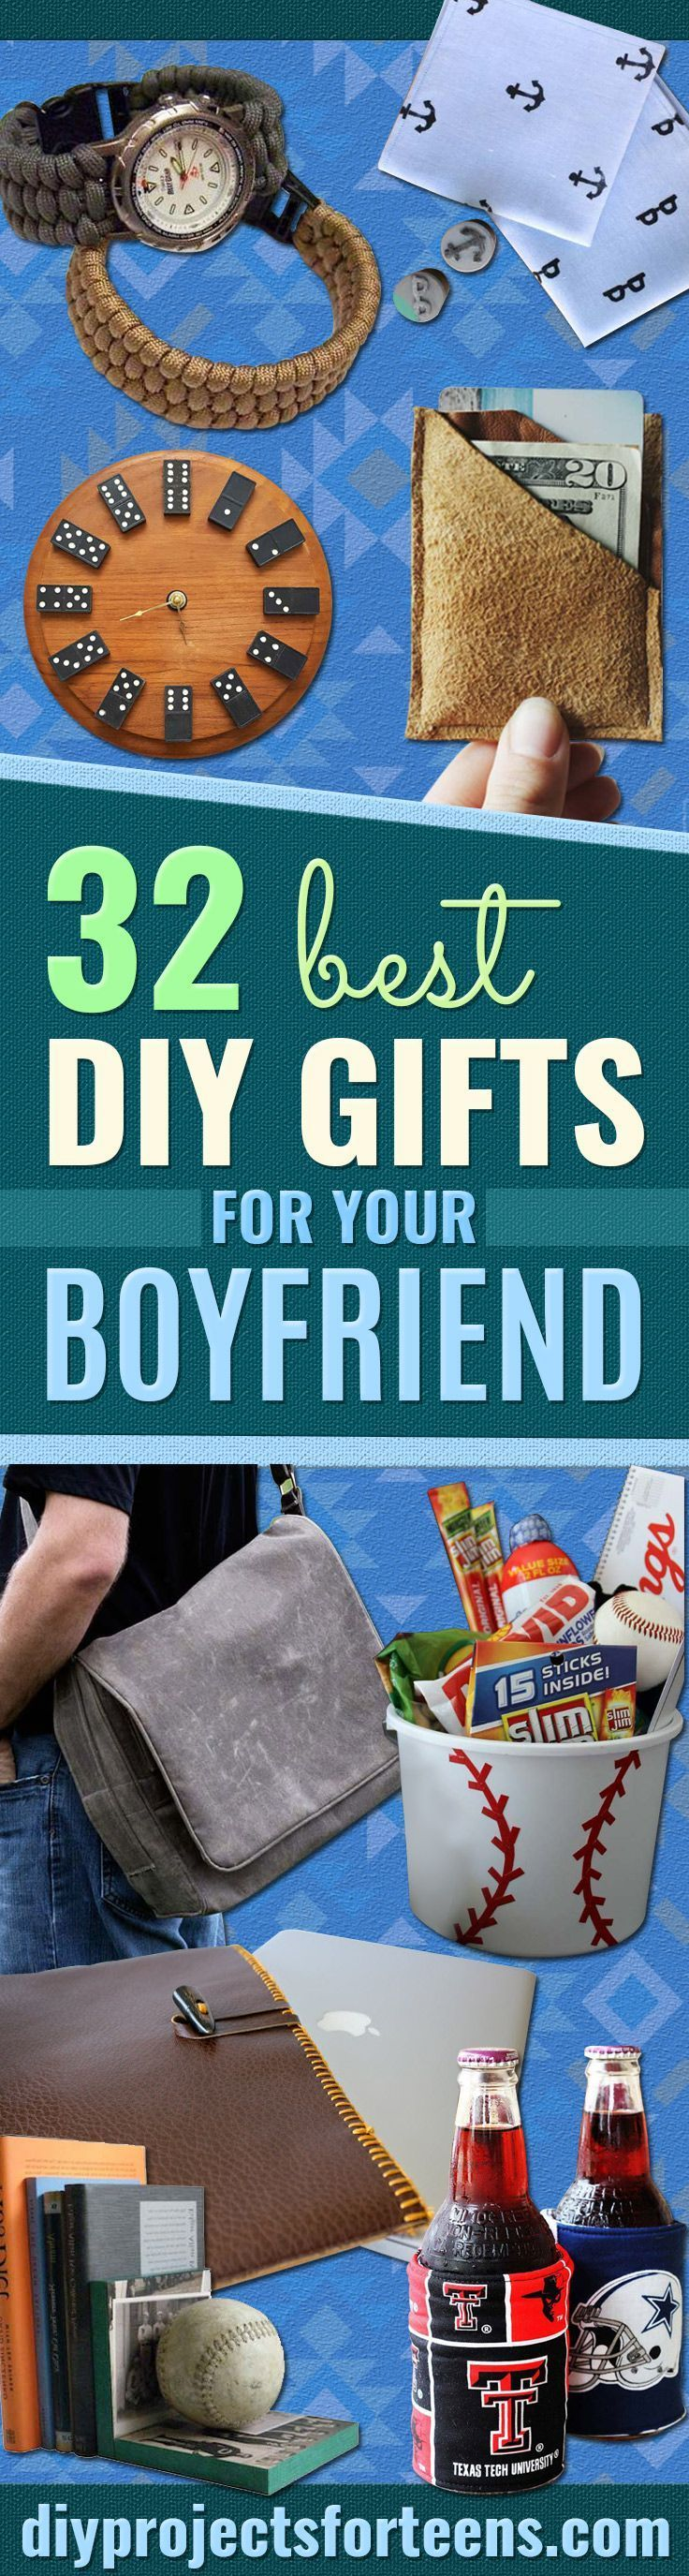 Top 25+ best Cheap boyfriend gifts ideas on Pinterest | Romantic ...